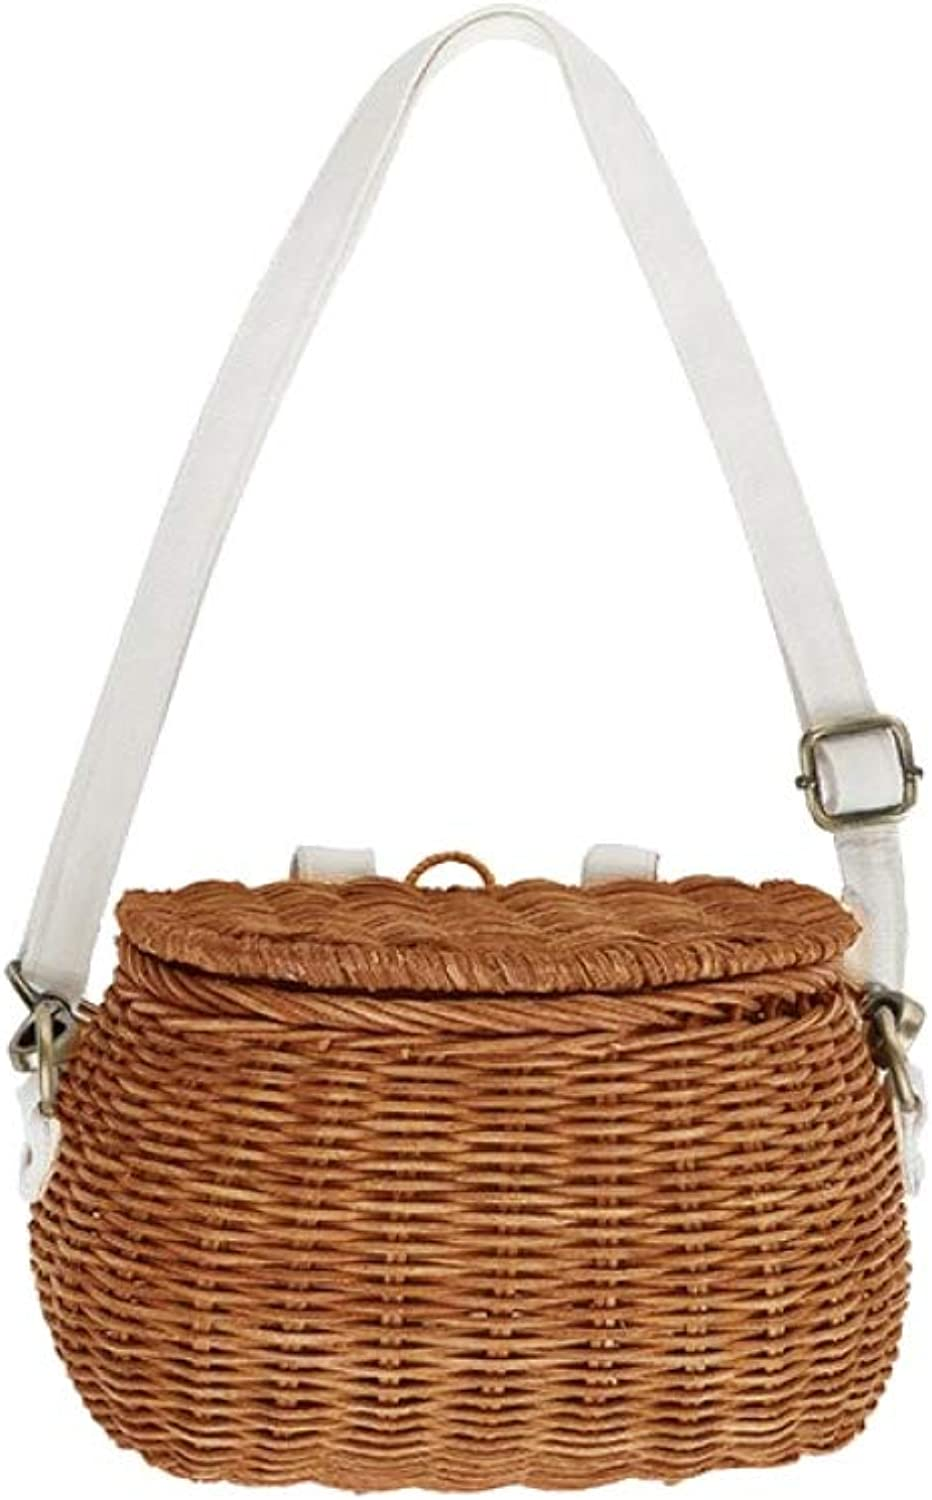 Women Straw Bag Vintage Rattan Fashion Handmade Knitted Crossbody Shoulder Handbag for Beach Travel Holiday